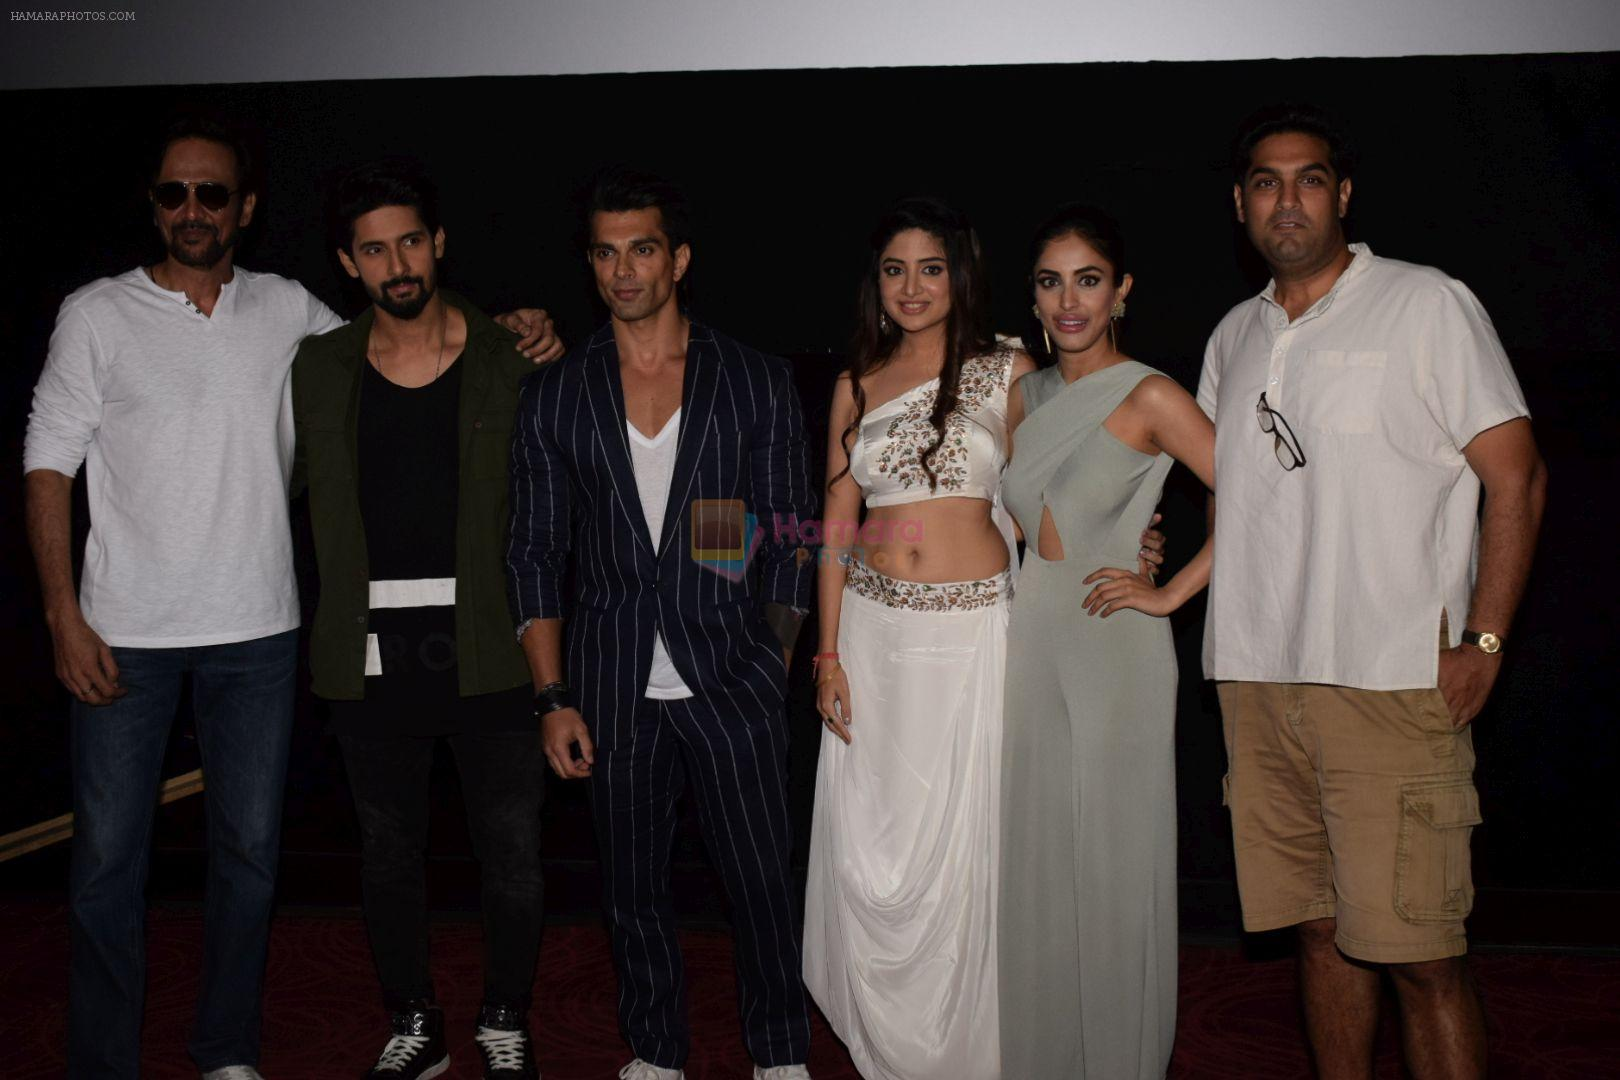 Karan Singh Grover, Kunaal Roy Kapur, Ravi Dubey, Kay Kay Menon, Priya Banerjee, Poonam Kaur at the Trailer  Launch of Film 3 Dev on 27th April 2018